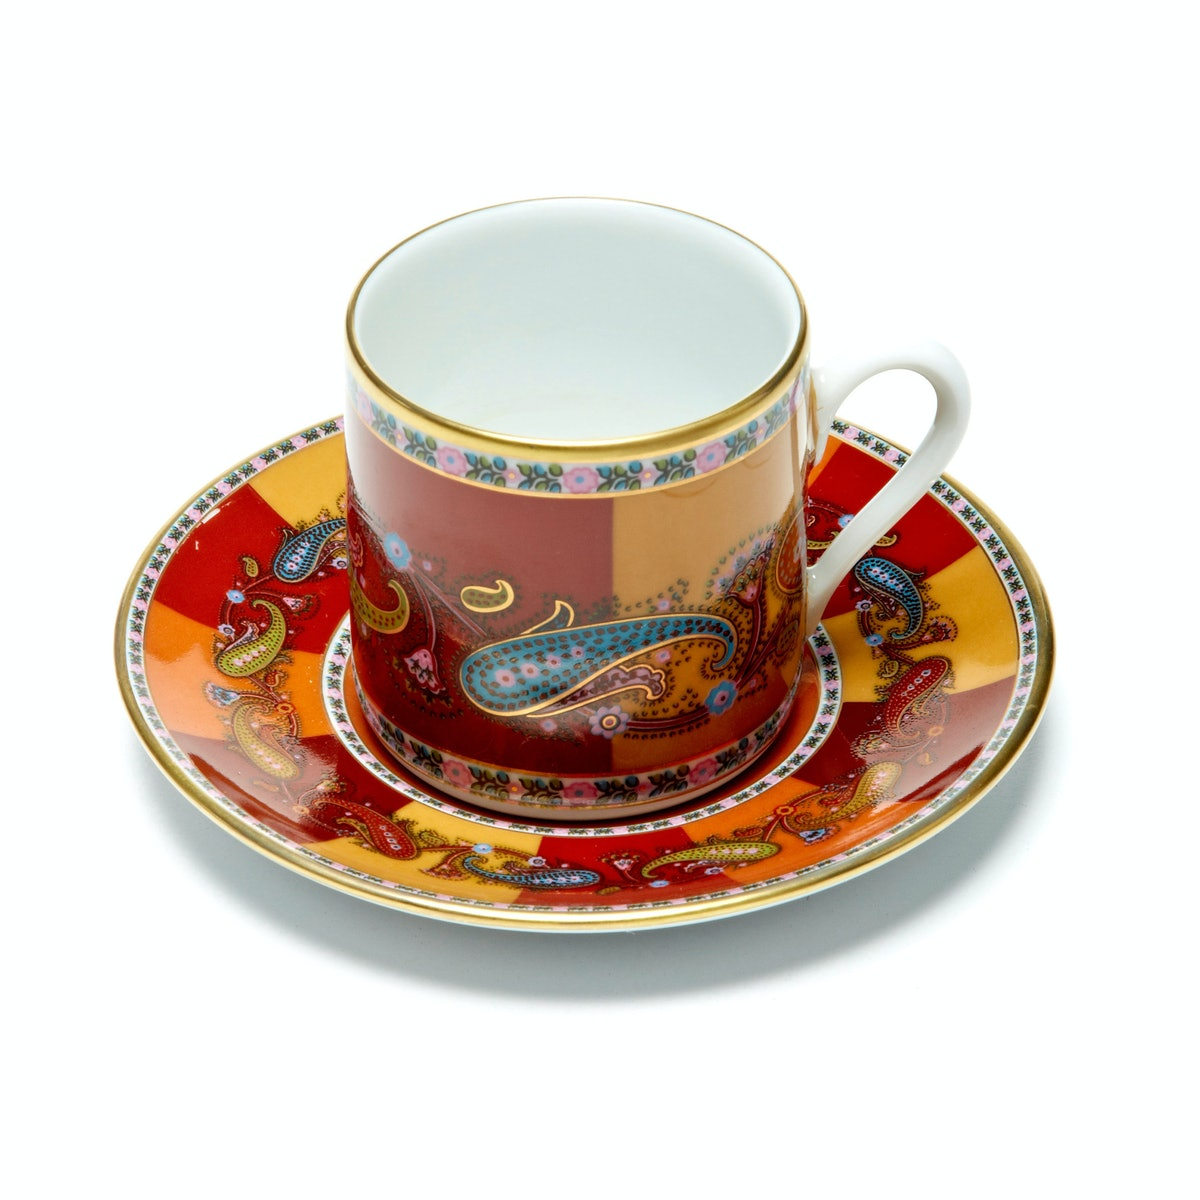 Etro teacup and saucer